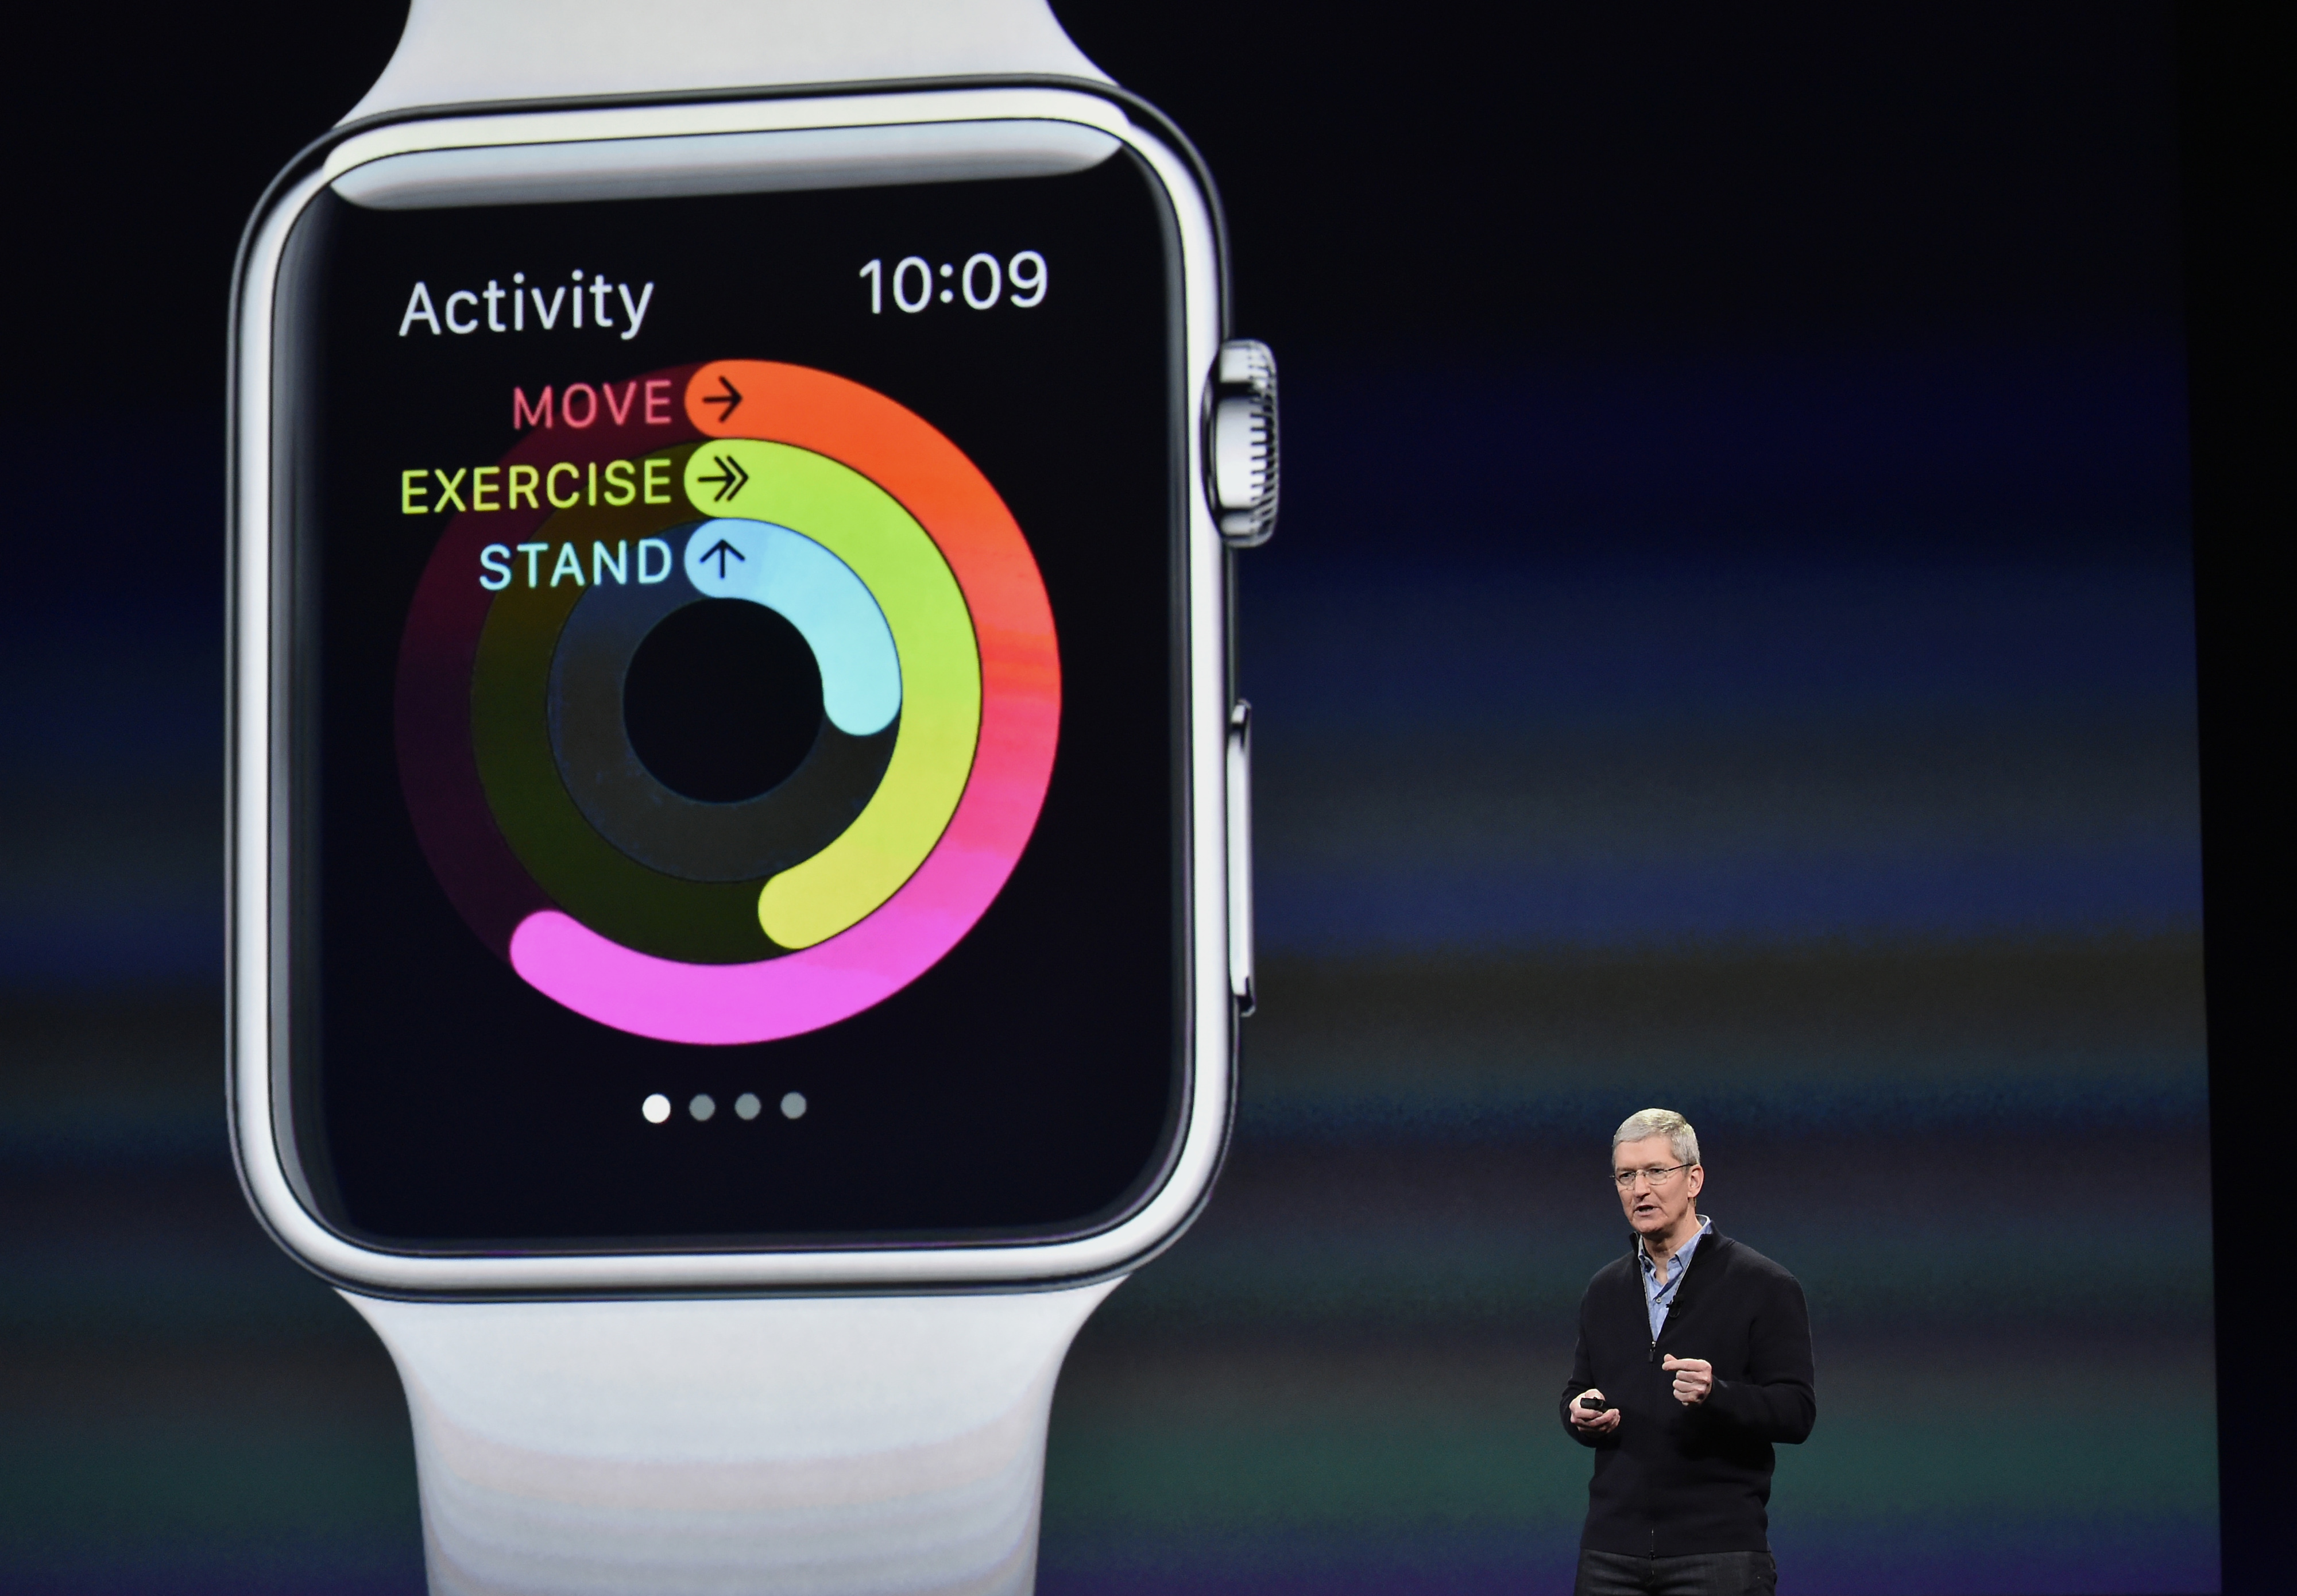 Tim Cook, chief executive officer of Apple Inc., speaks during the Apple Inc. Spring Forward event in San Francisco, California, on March 9, 2015.